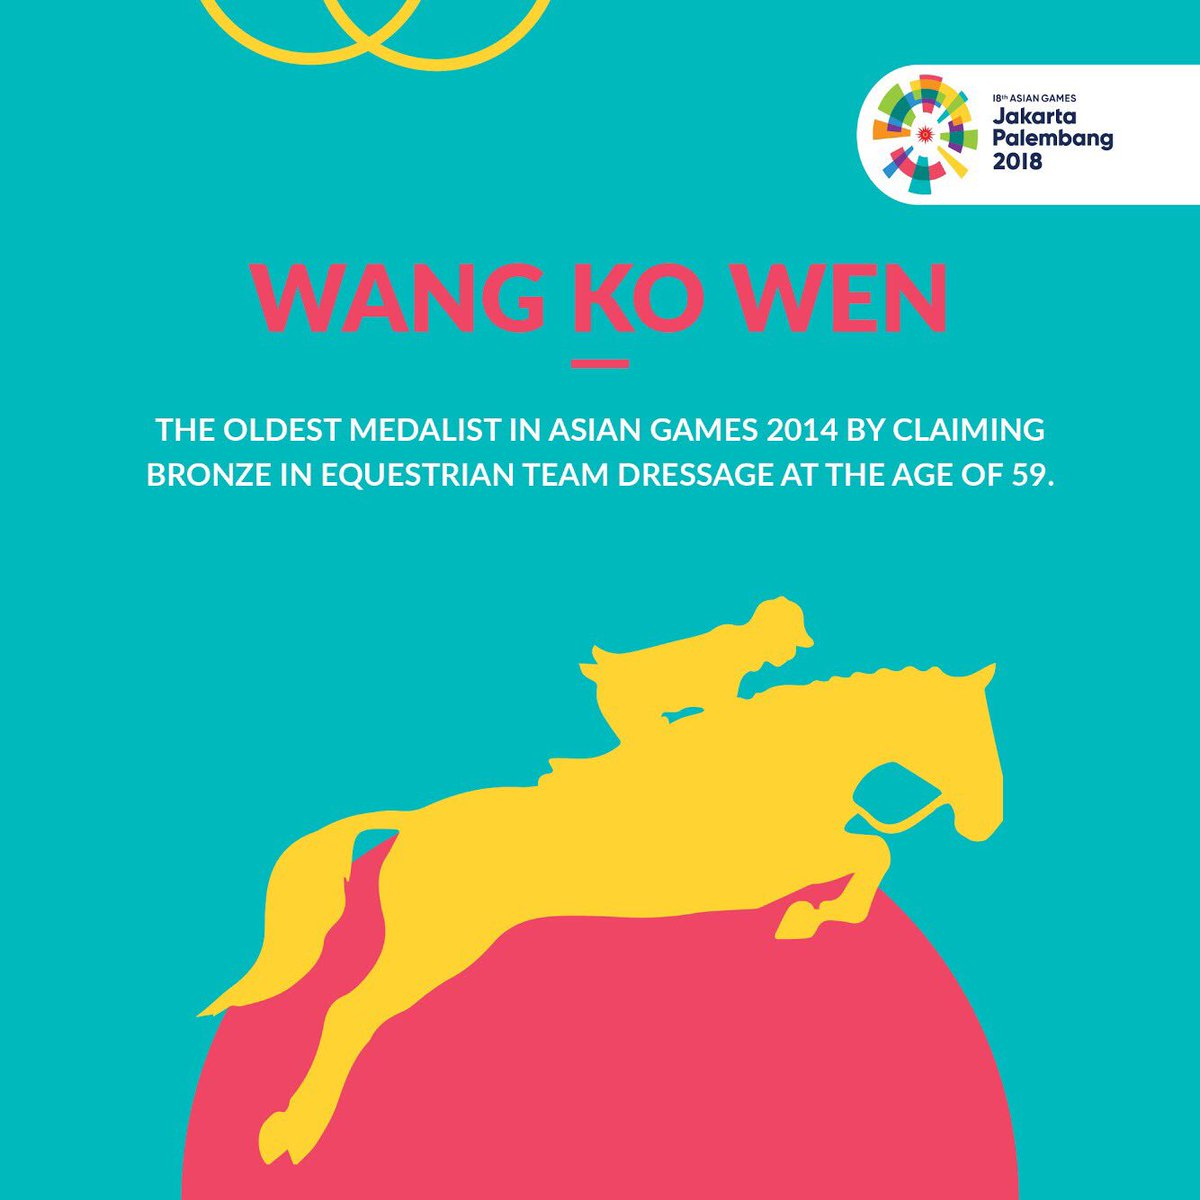 Asian Games  On Twitter Age Is Not The Limit When It Comes To Achievements Wang Ko Wen Is The Living Proof Of This